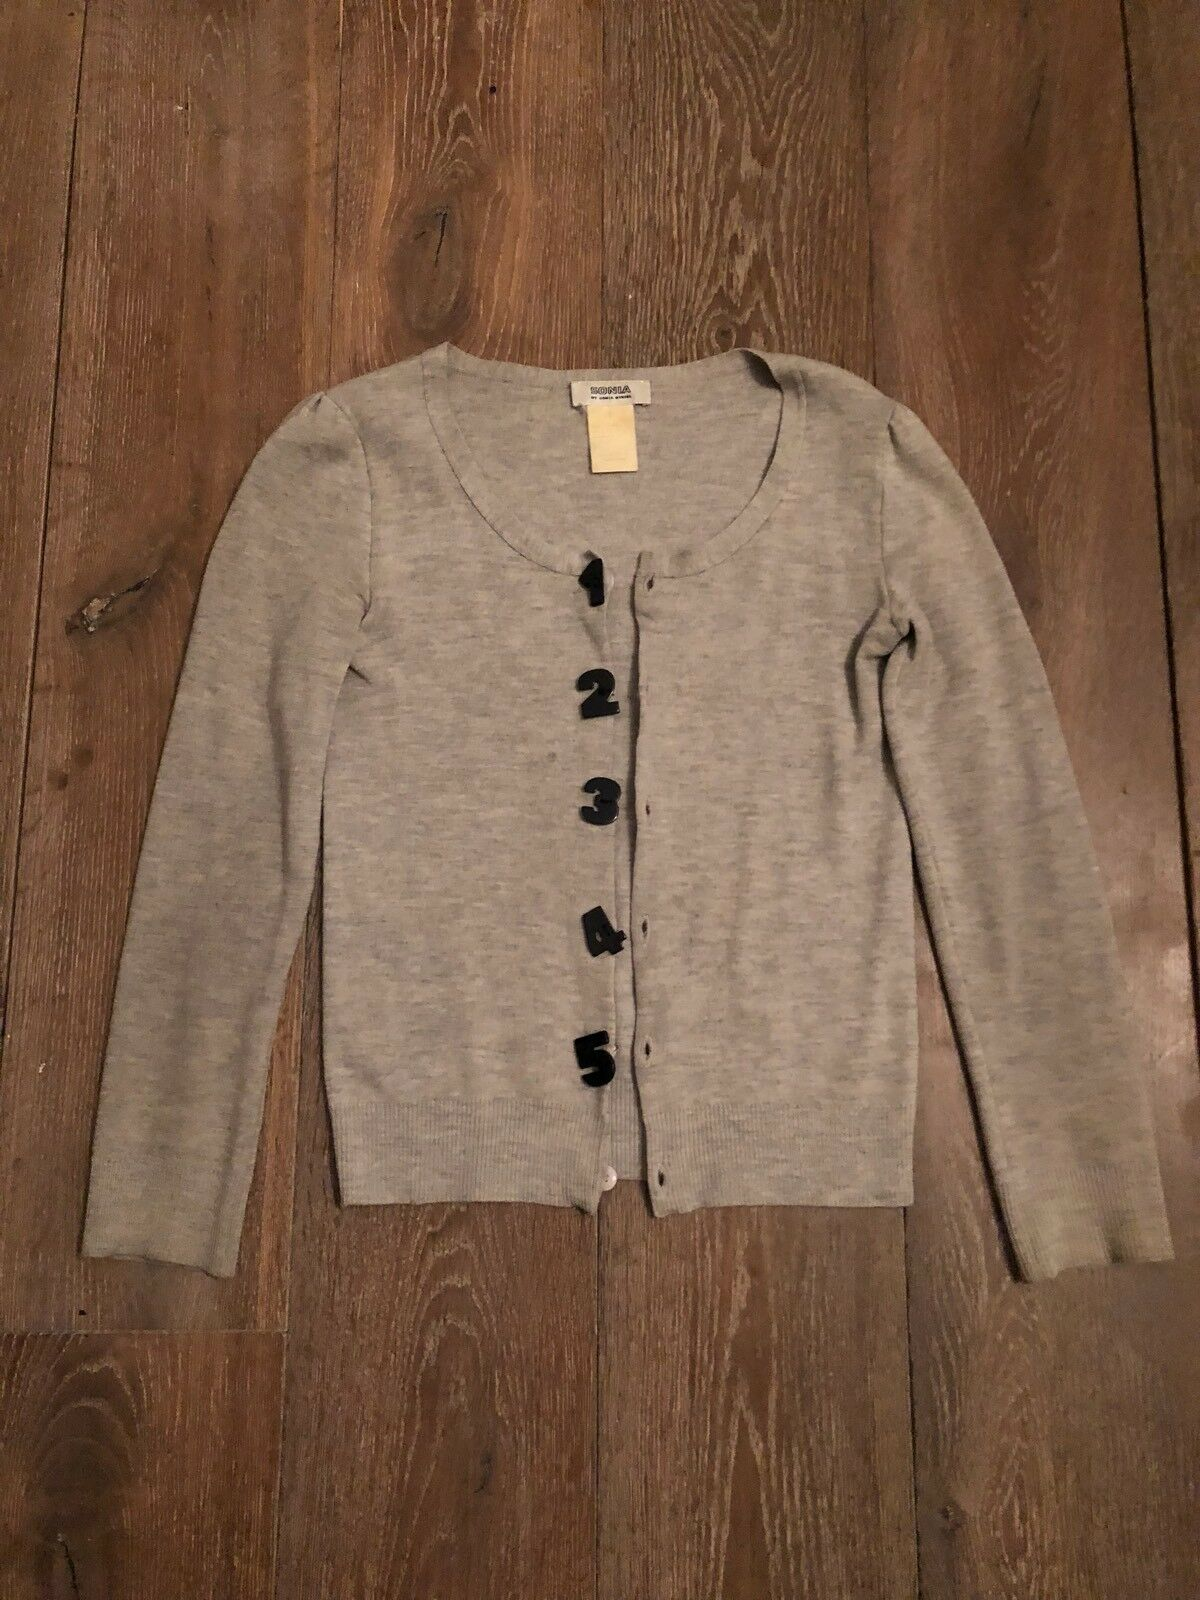 Sonia Rykiel Rare Collectible Grey Cardigan Top Statement Number Buttons 2 XS 8